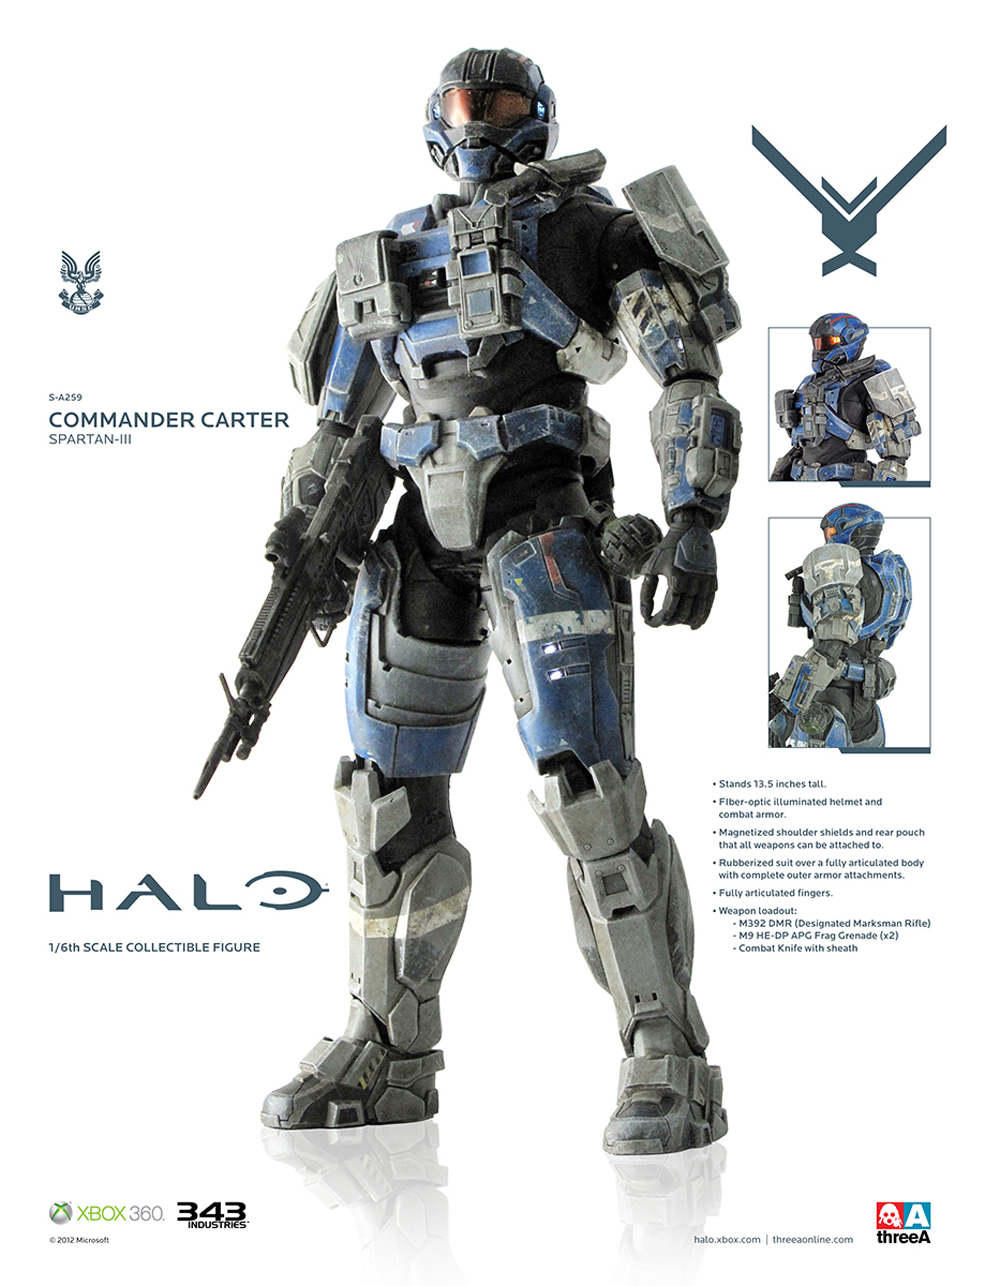 HALO COMMANDER CARTER 1/6 SCALE FIG